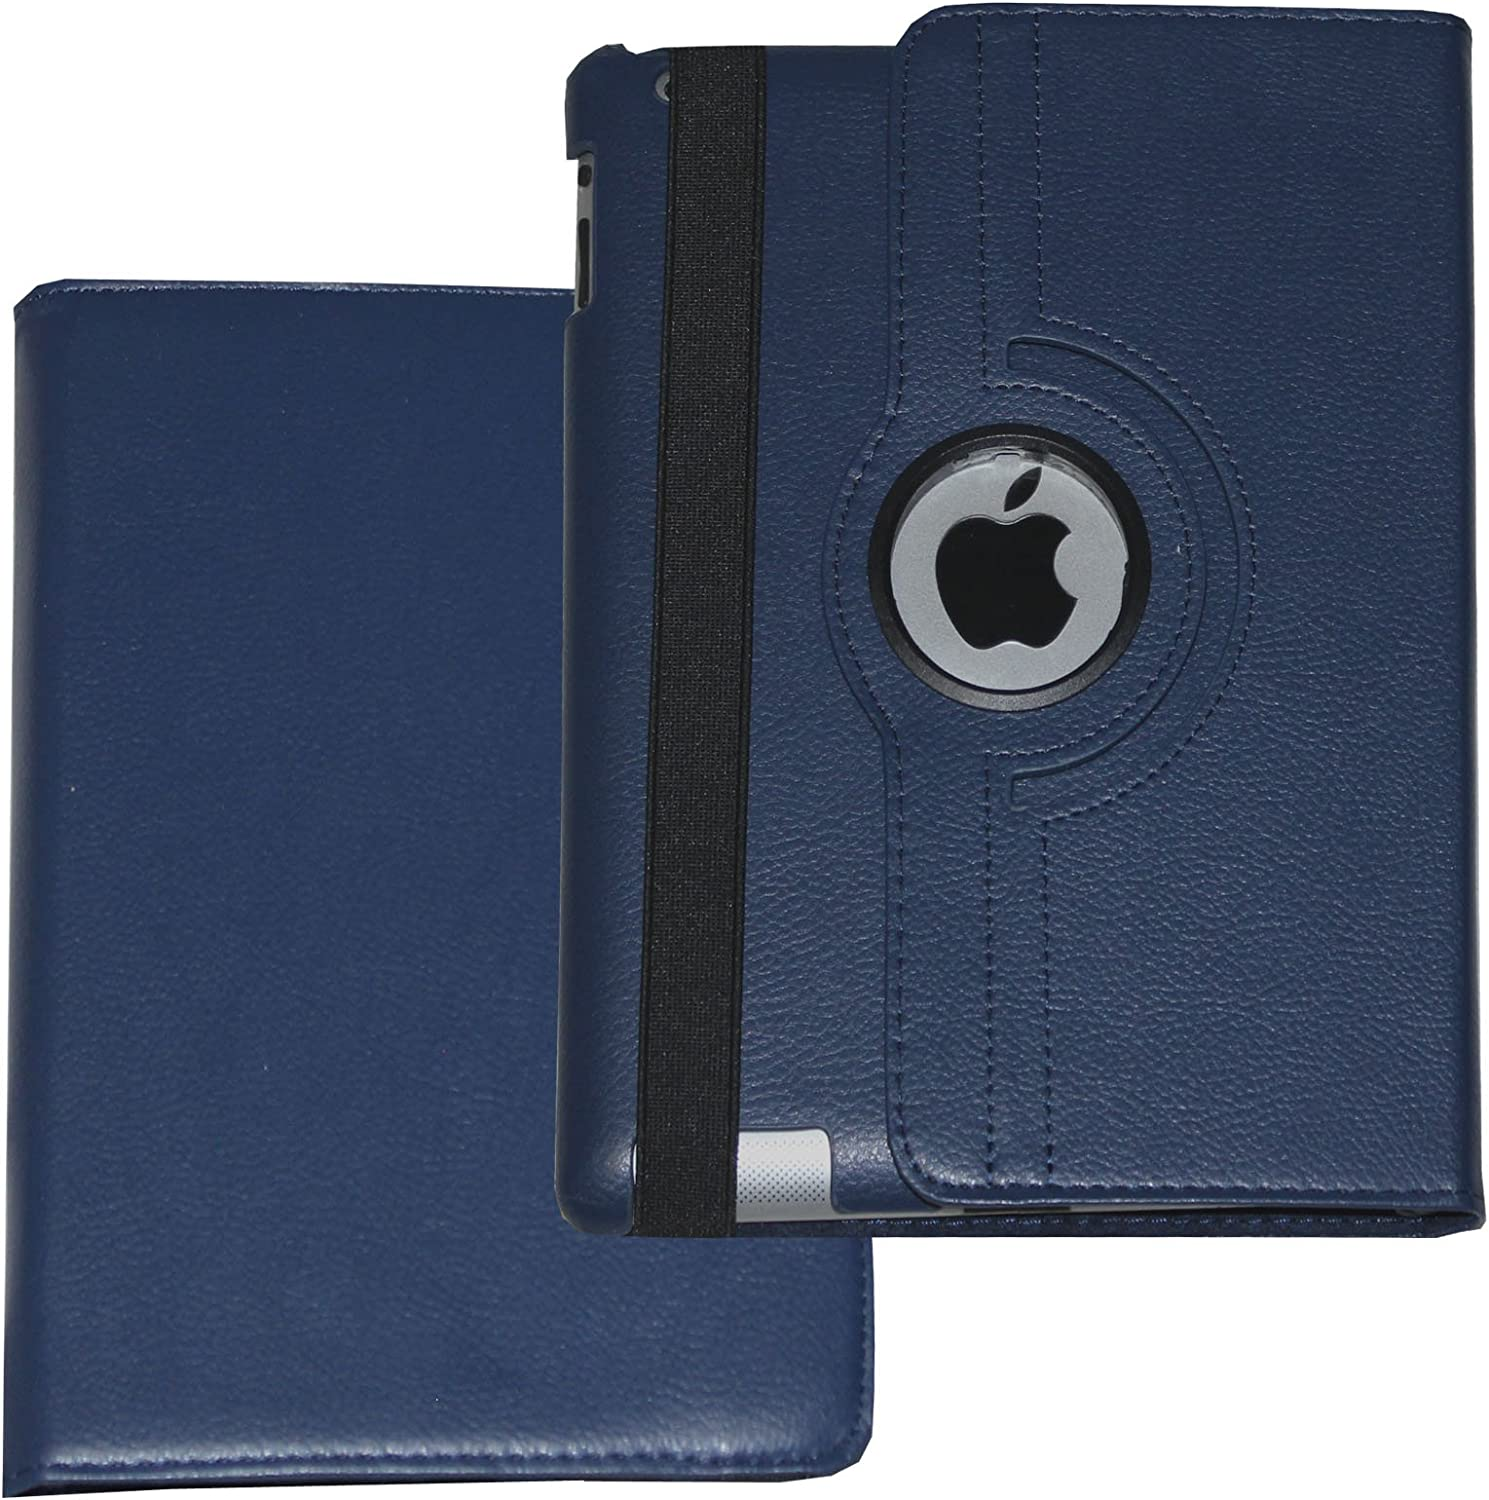 Case for iPad 2nd 3rd 4th Generation, Fit Model A1395 A1396 A1397 A1416 A1430 A1403 A1458 A1459 A1460 – Lingsor Smart Cover Case Rotating Stand Support Wake up Sleep, Royal Blue